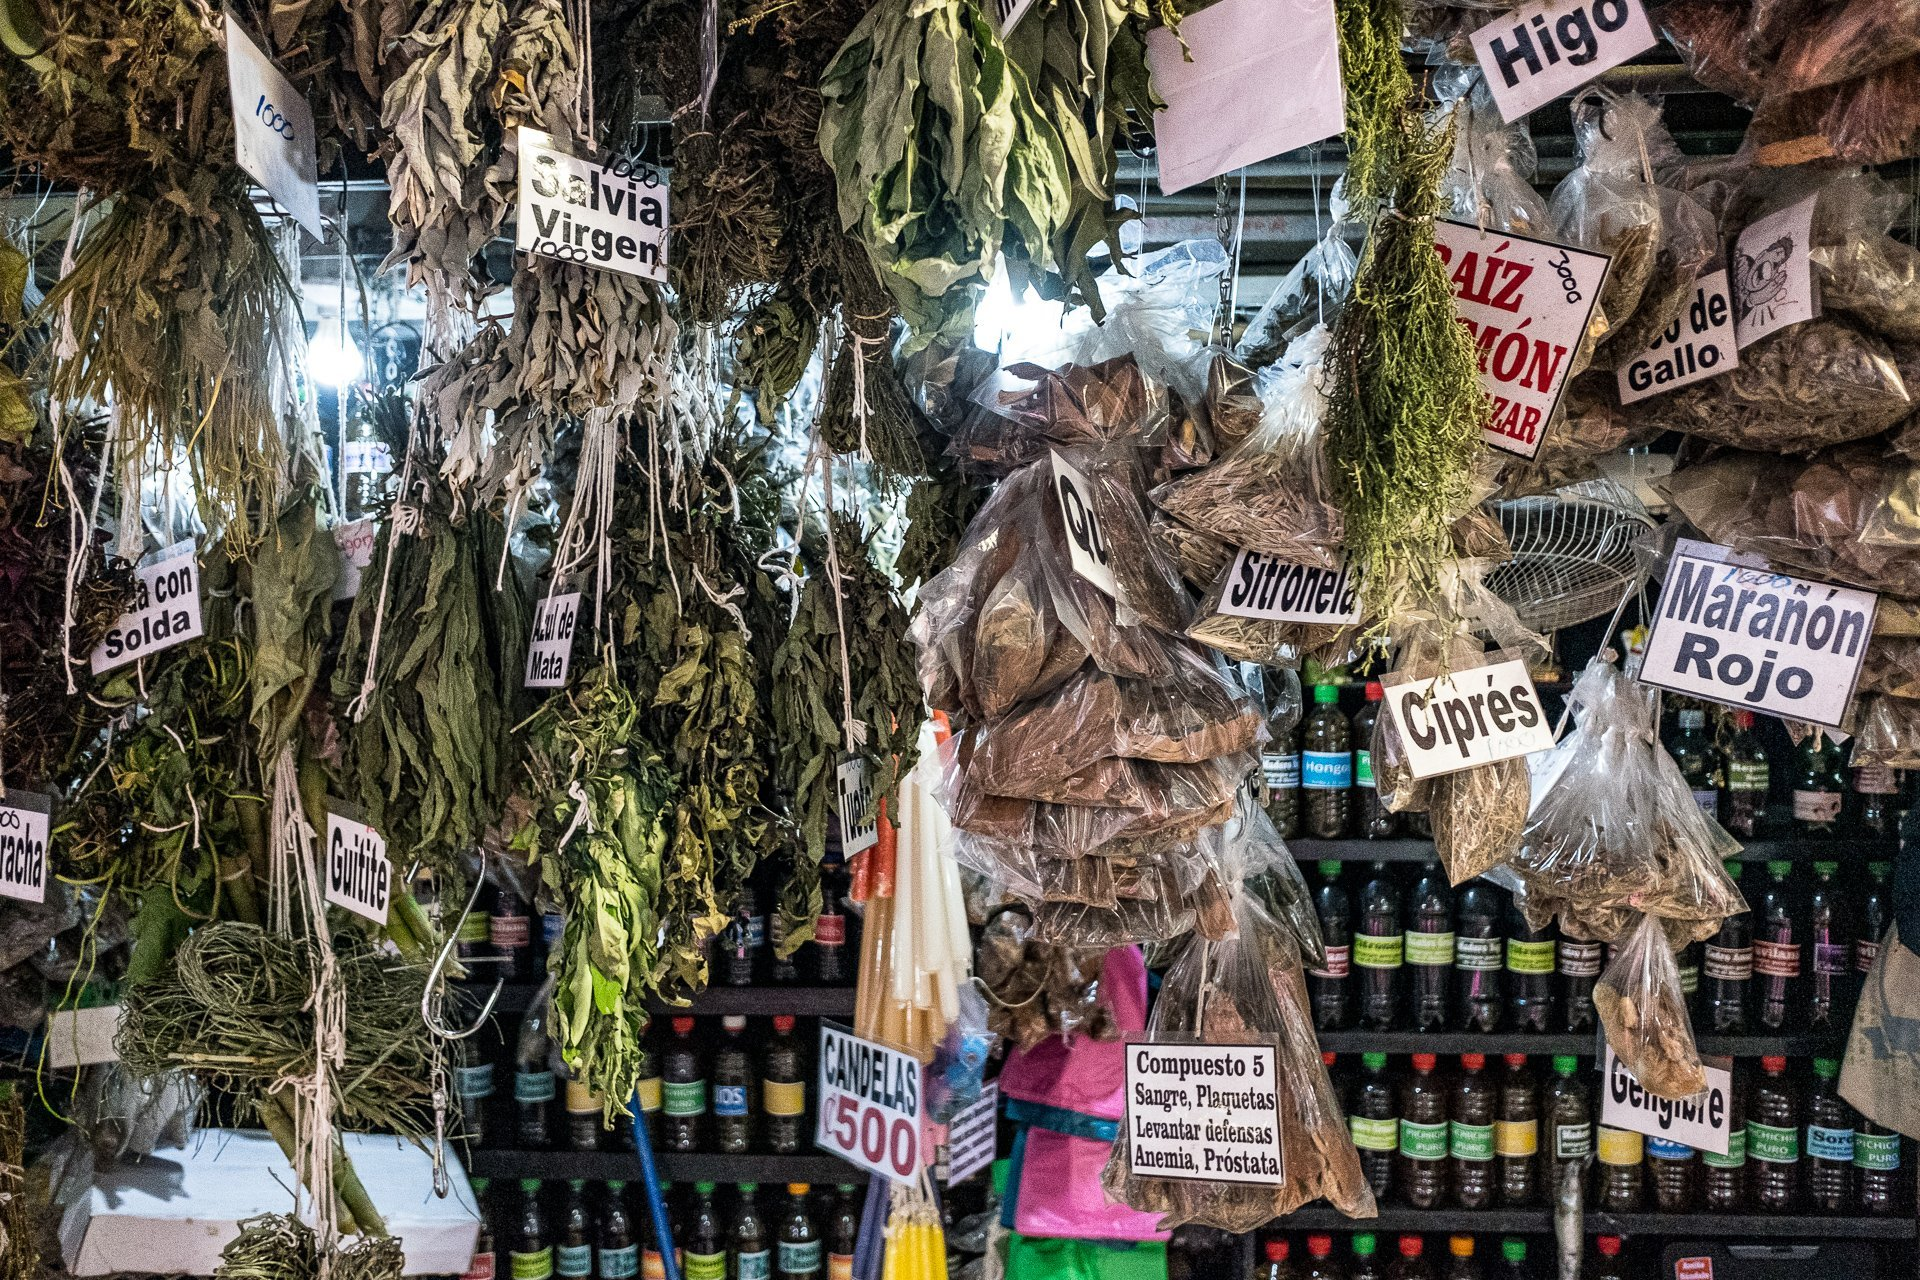 Street Photography Costa Rica Alajuela Market Herbs